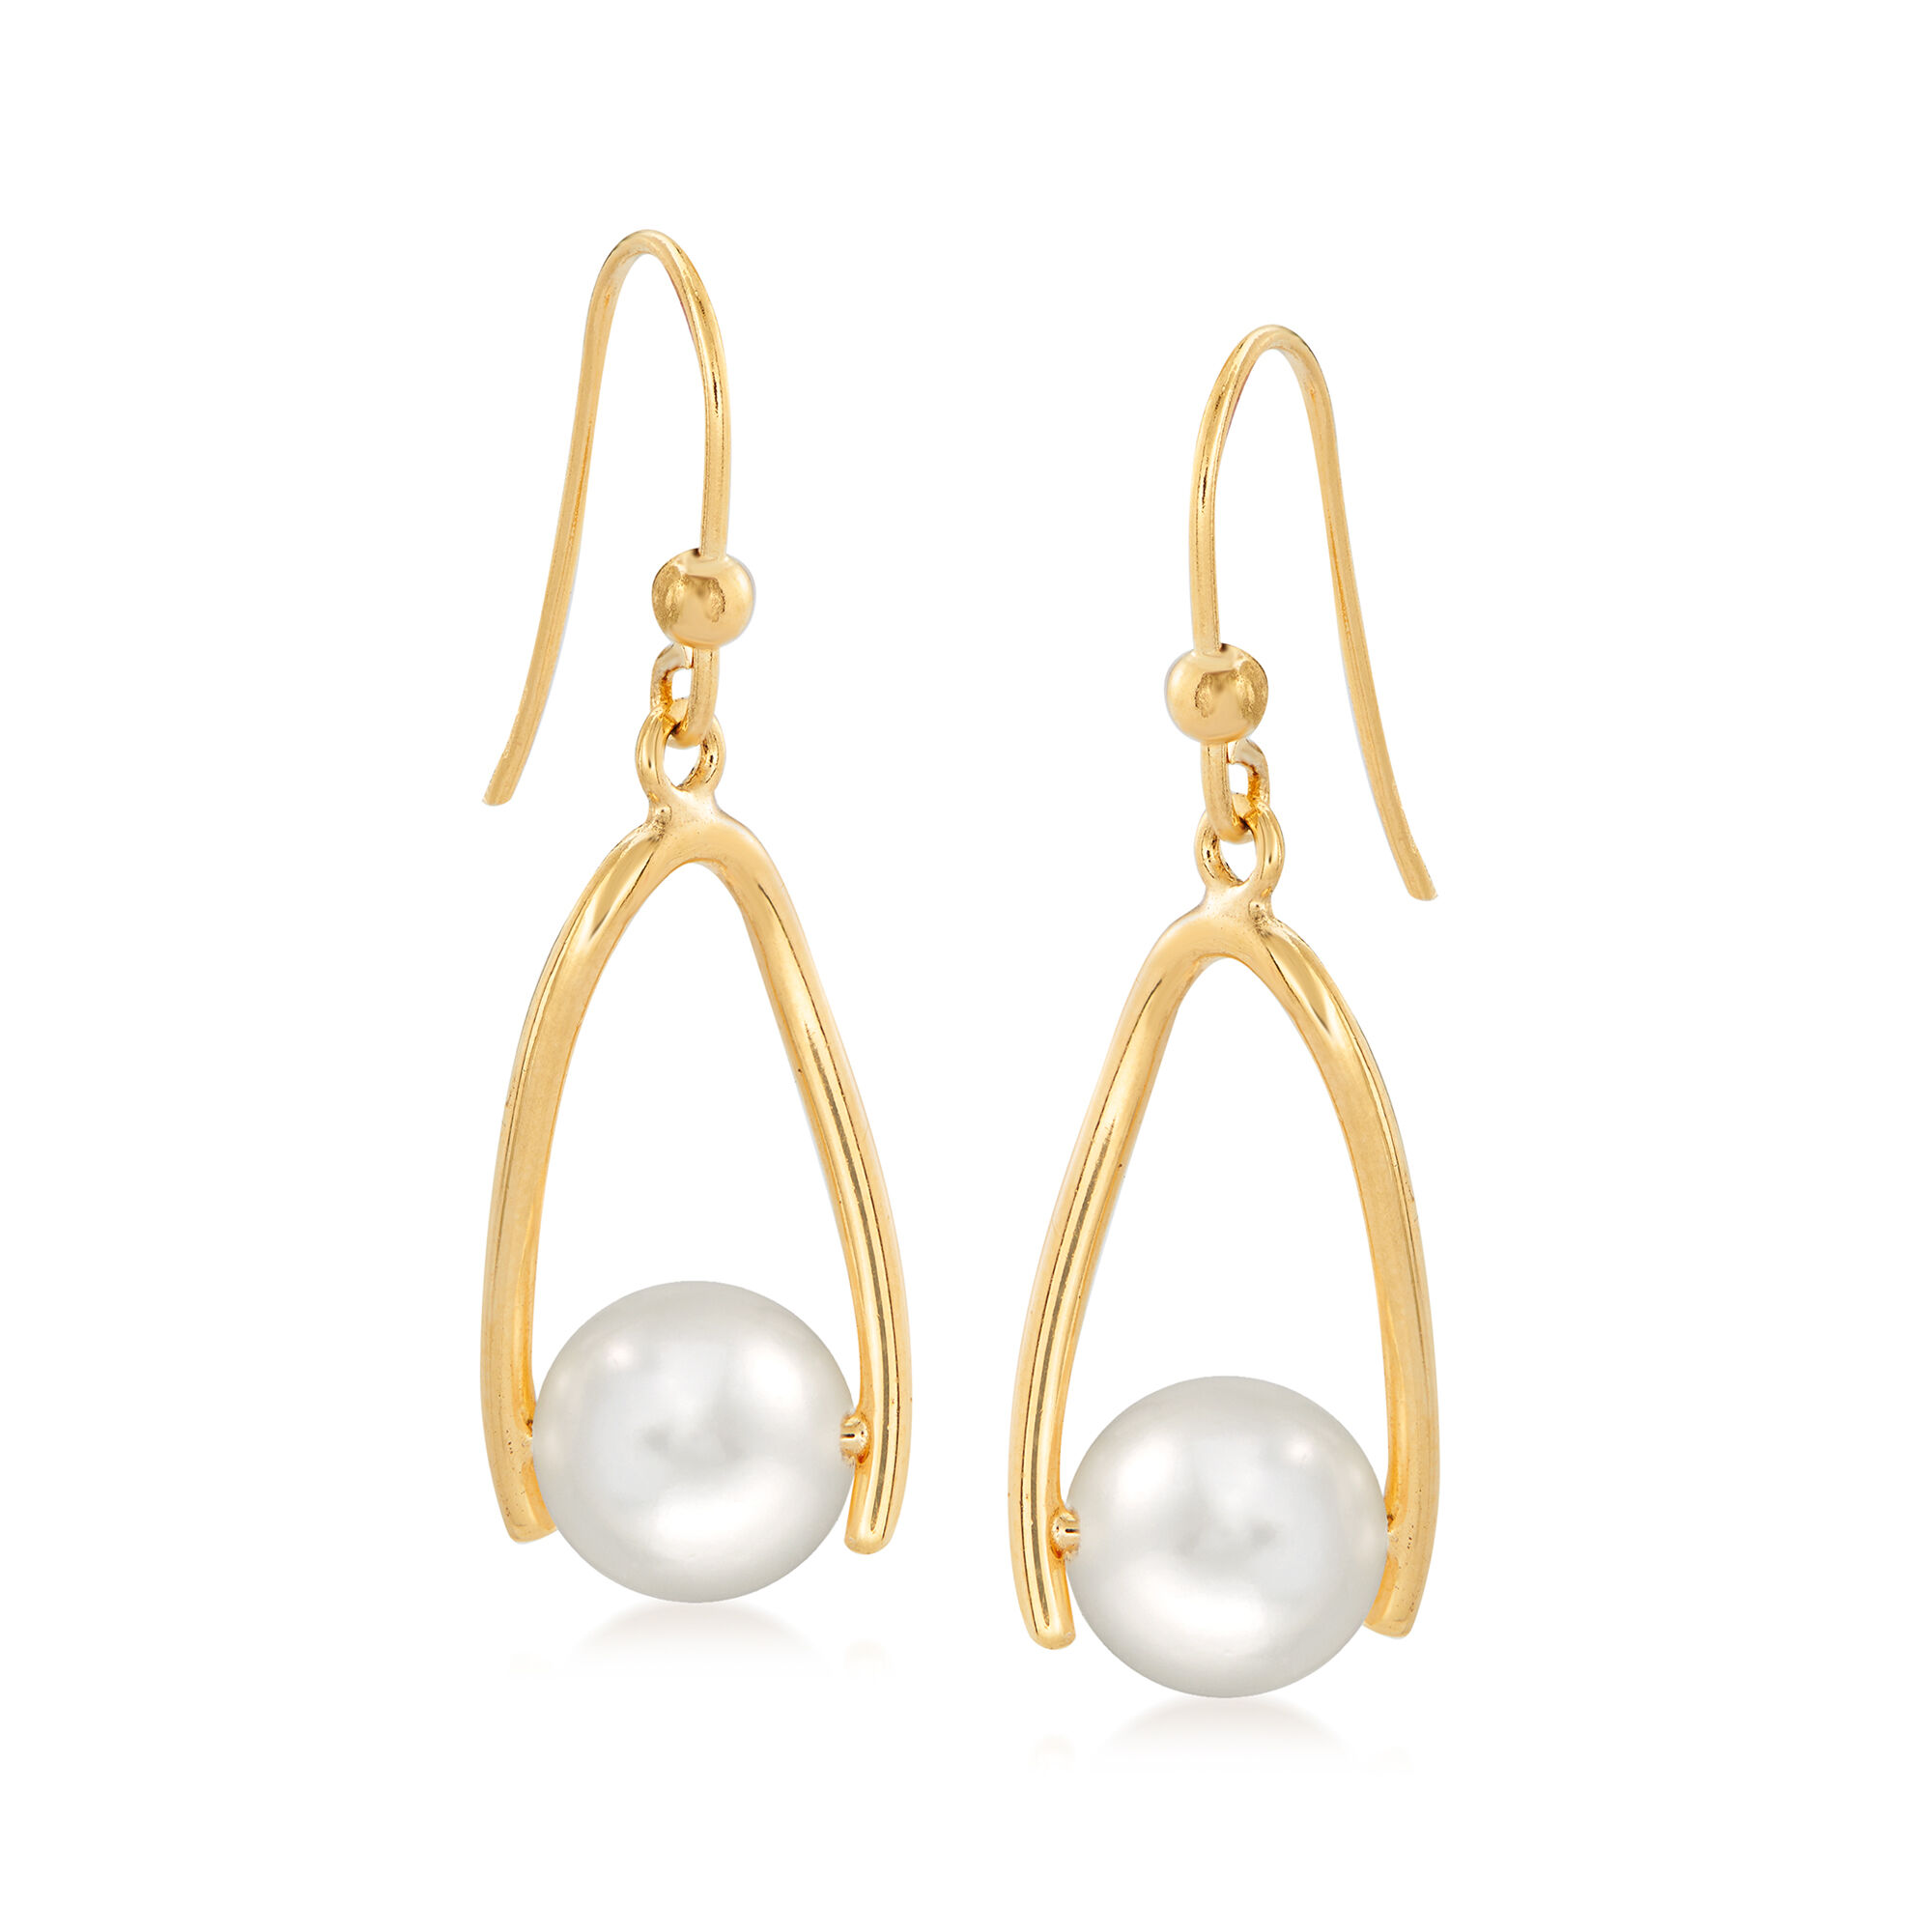 Sterling Silver with 14k 7x5mm Freshwater Cultured Pearl Drop Earrings